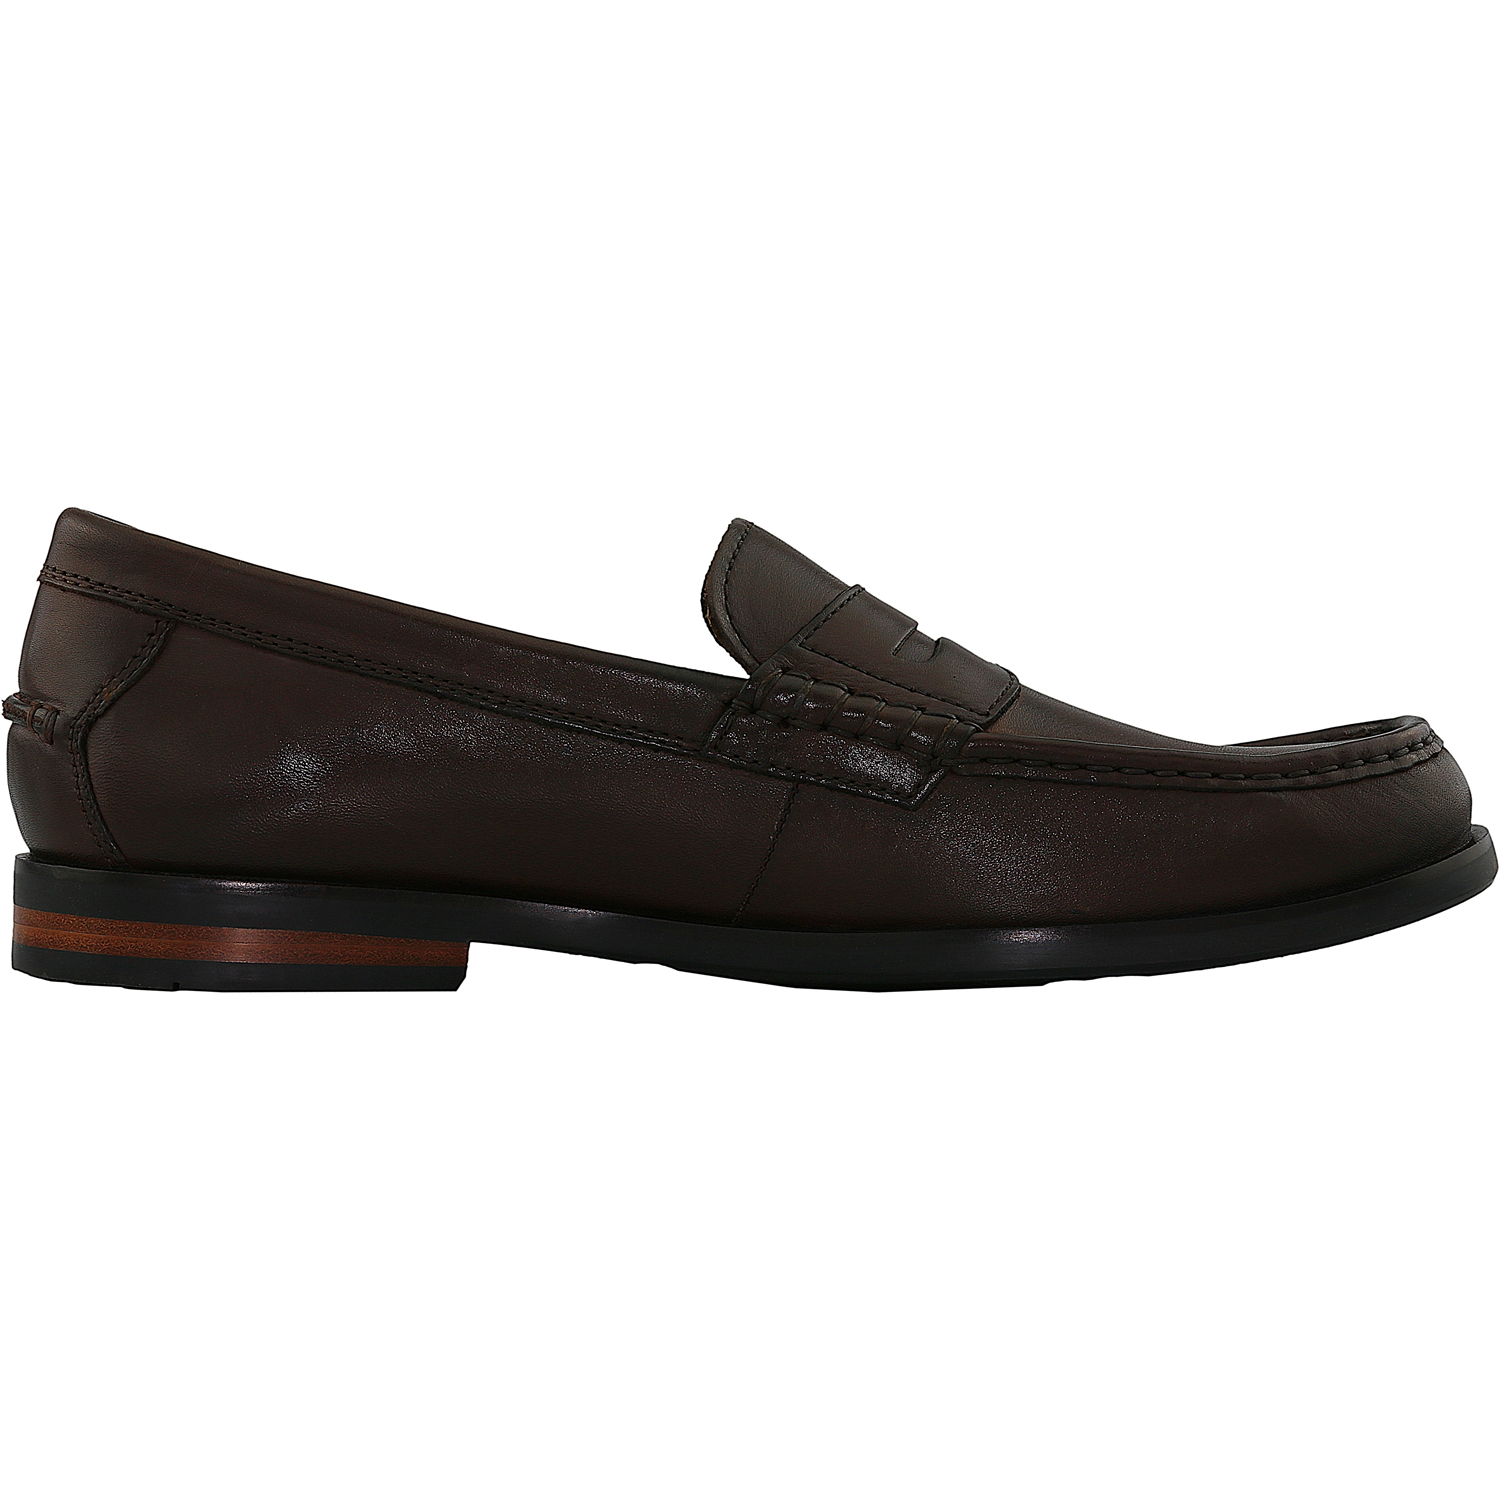 Cole Haan Men's Pinch Friday Contemporary Hand Stained Leather Black Ankle-High Loafer - 10M